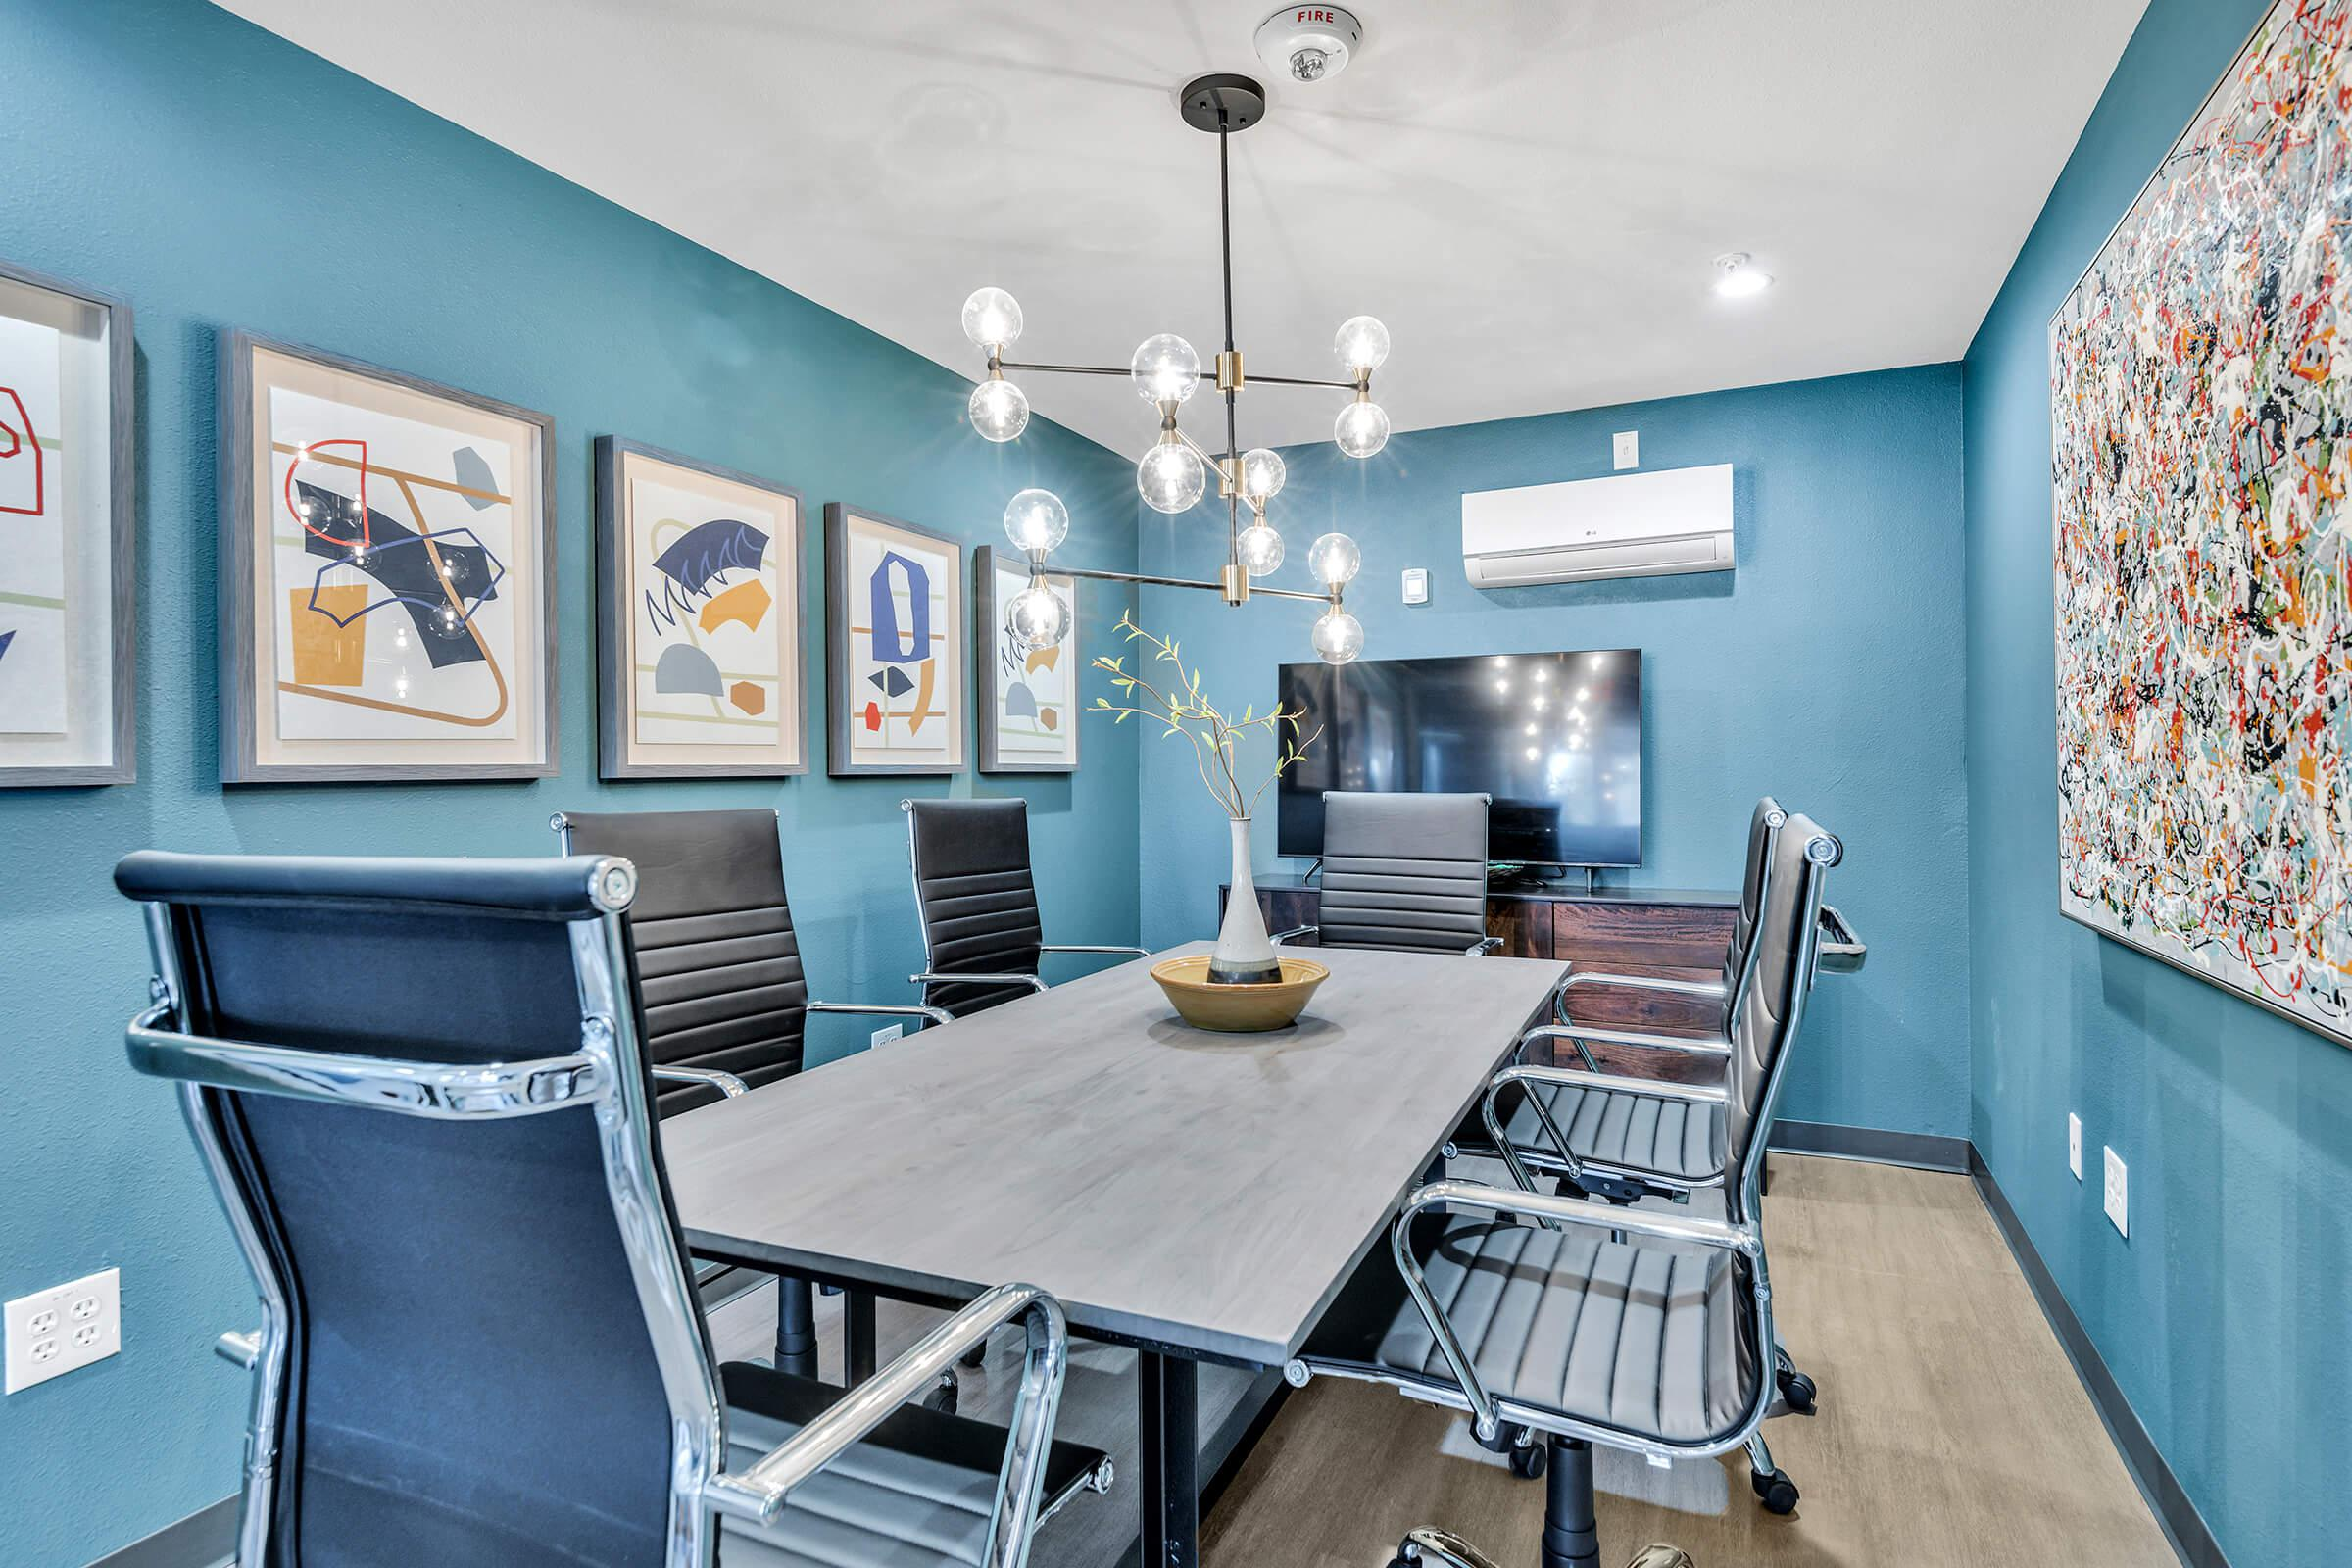 a table topped with a blue chair in a room